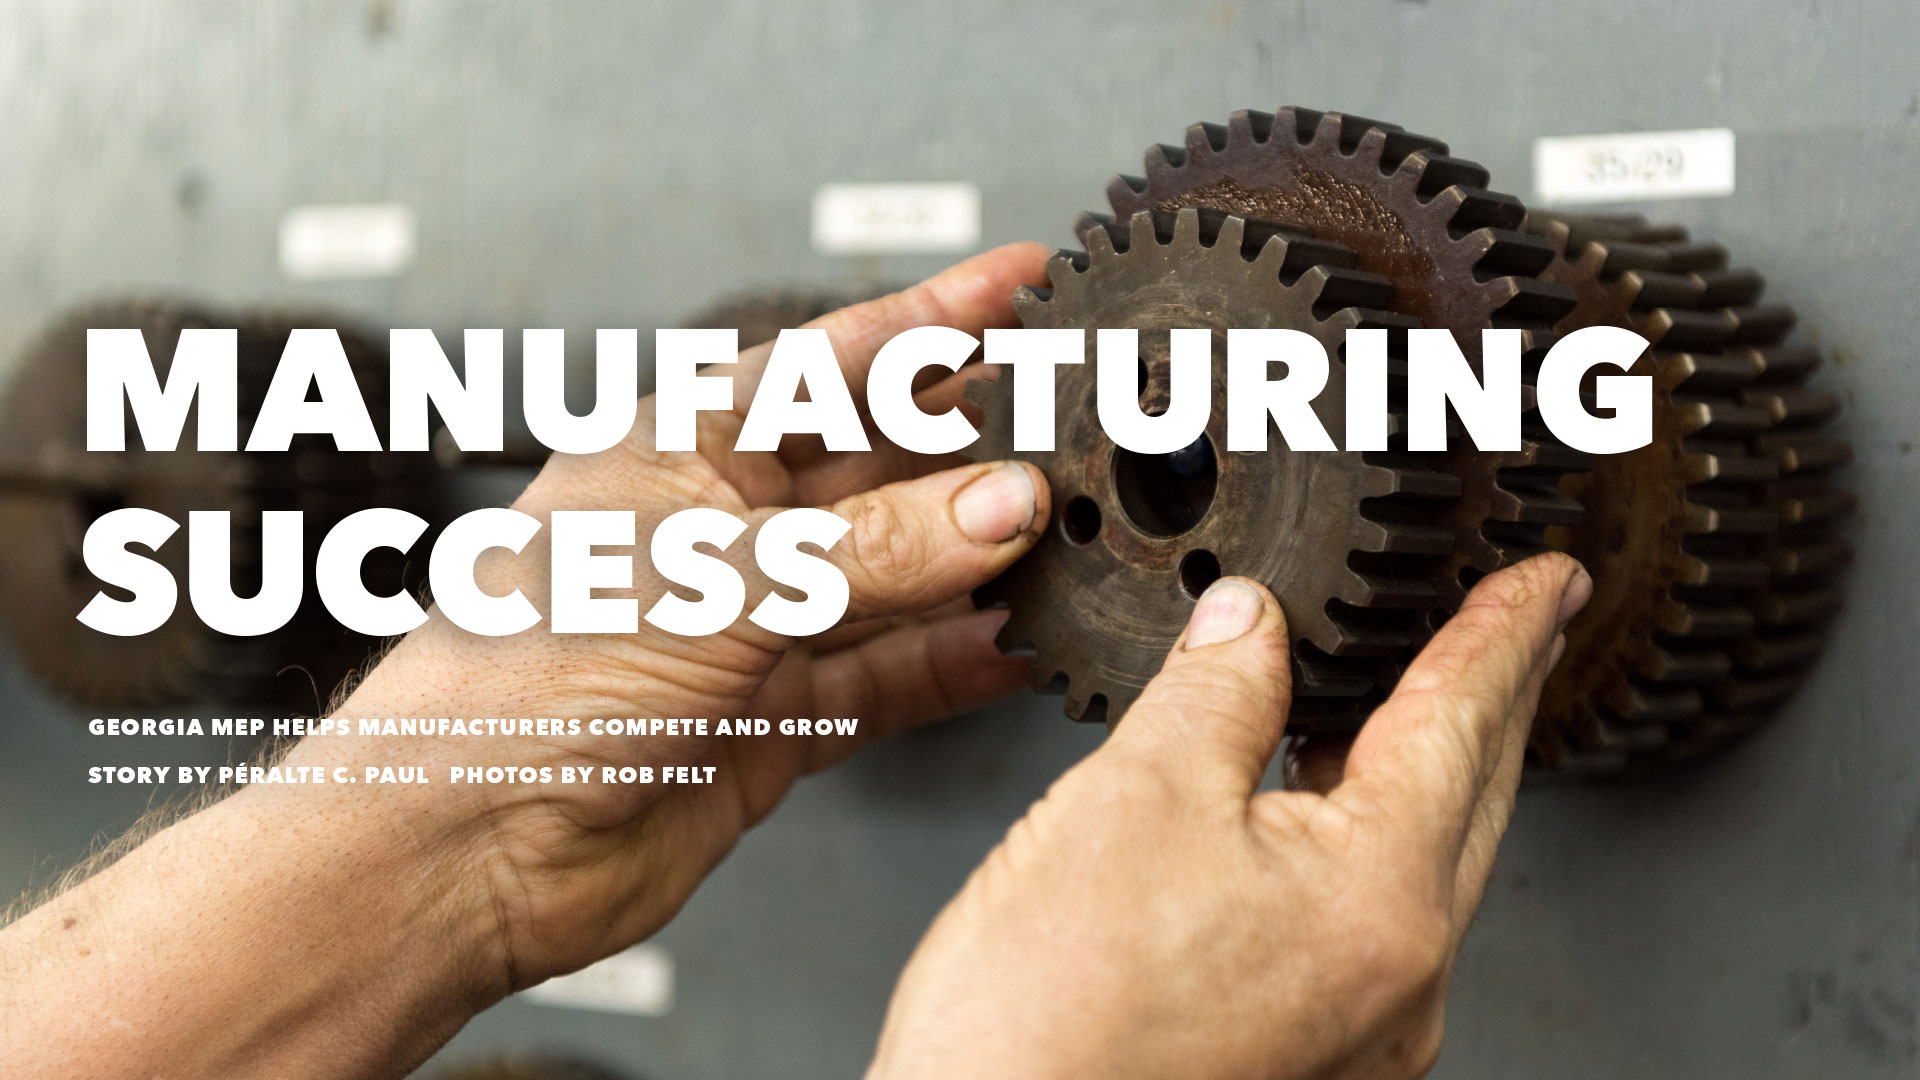 Headline - Manufacturing Success - Georgia MEP Helps Manufacturers Compete and Grow - Story By Péralte C. Paul - Photos by Rob Felt